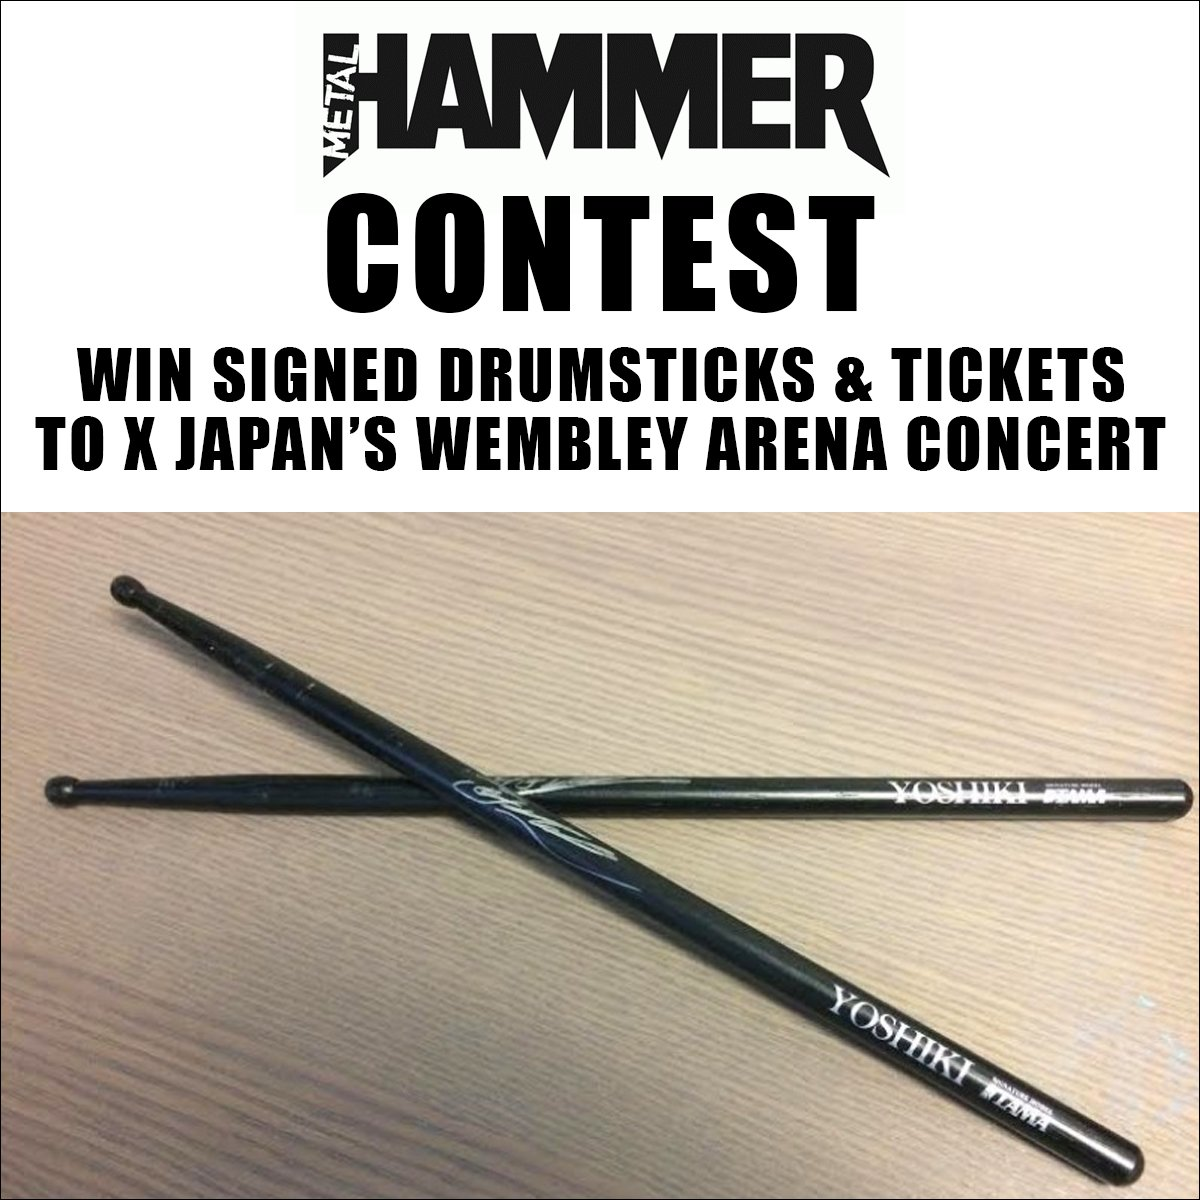 #XJapan contest from @MetalHammer! Win drumsticks signed by @YoshikiOfficial and tickets for #Wembley Arena concert!  http:// bit.ly/2mpk1zv  &nbsp;  <br>http://pic.twitter.com/J4mNplGXFR